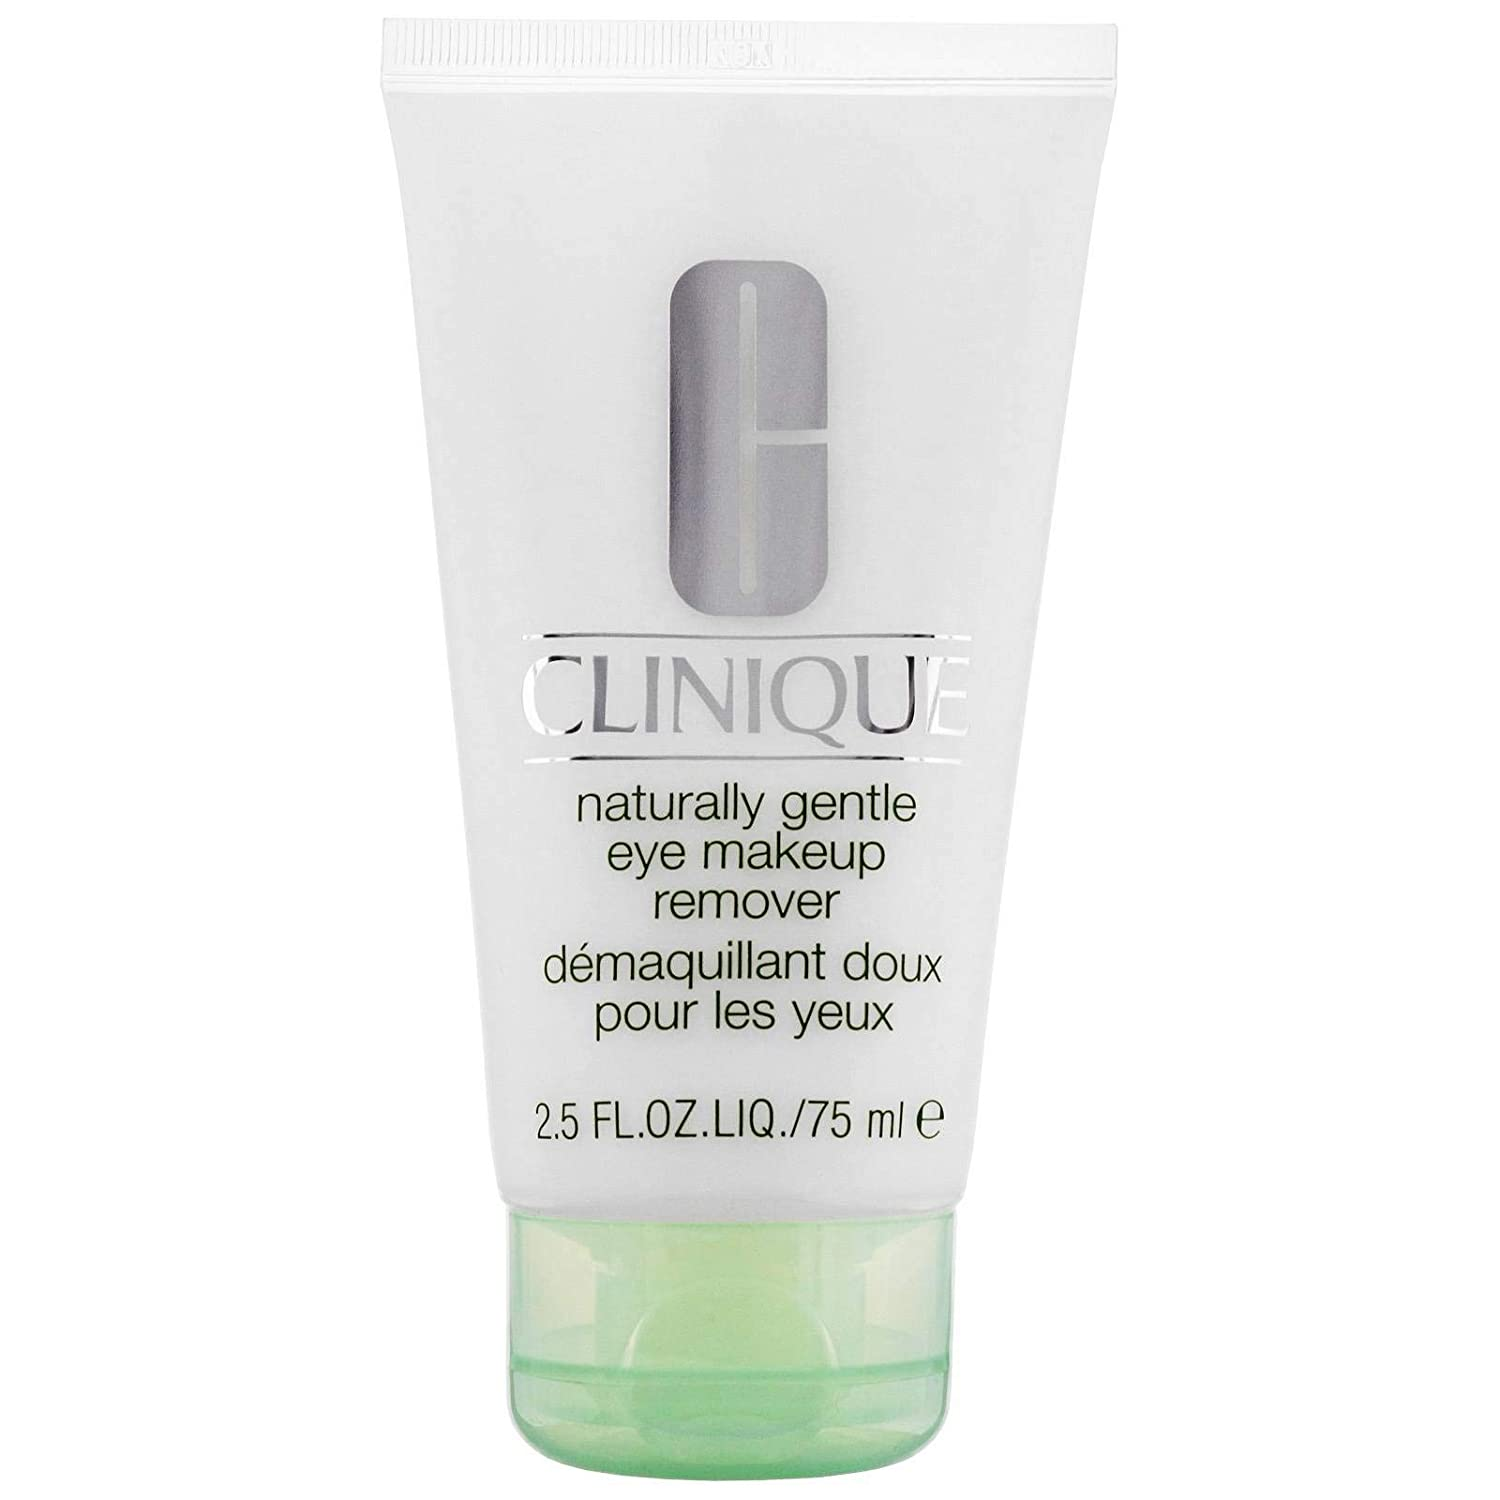 Clinique Naturally Gentle Eye Make Up Remover, 2.5 Ounce : Eye Makeup Removers : Beauty & Personal Care